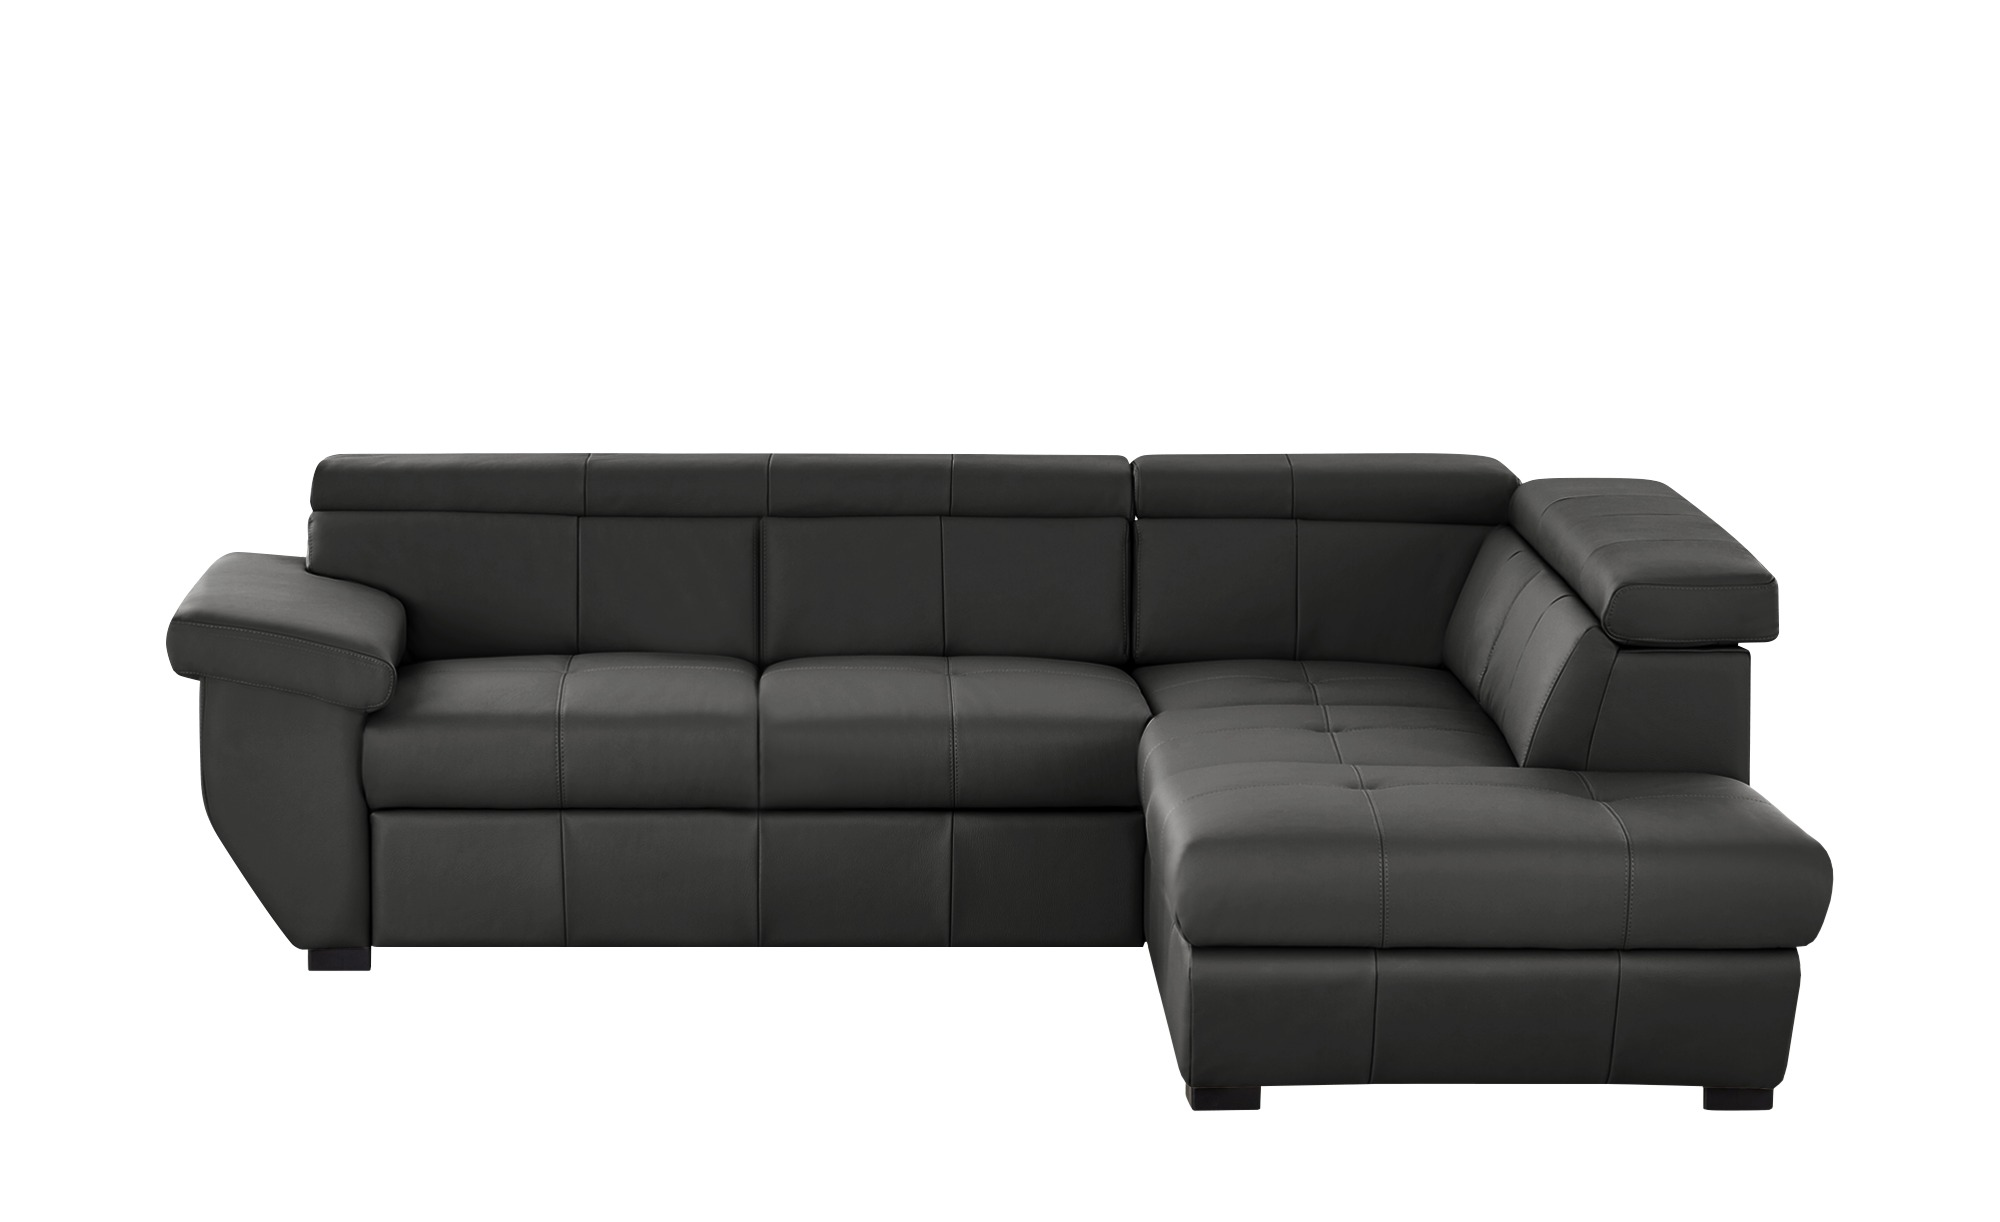 ecksofa speedway breite h he grau online kaufen bei woonio. Black Bedroom Furniture Sets. Home Design Ideas